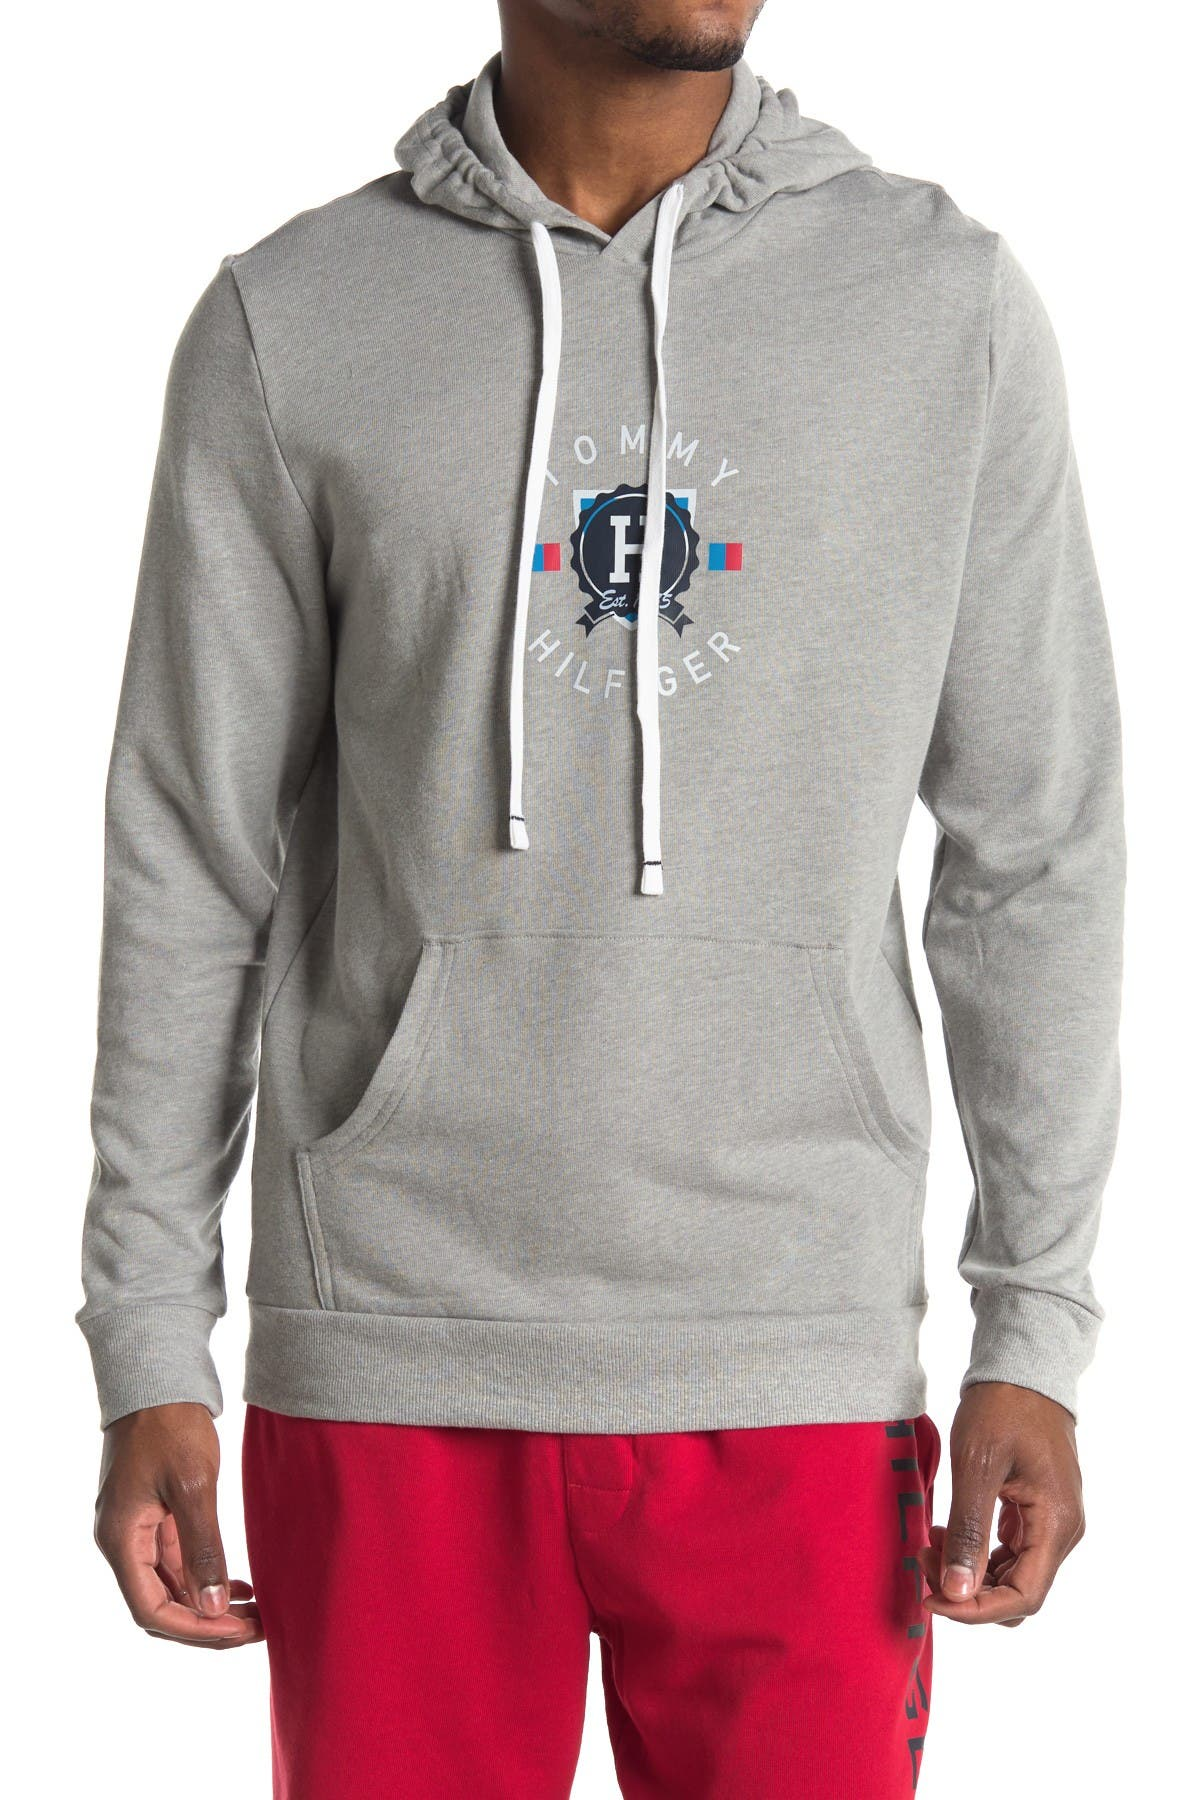 Image of Tommy Hilfiger Logo Pullover French Terry Lounge Hoodie